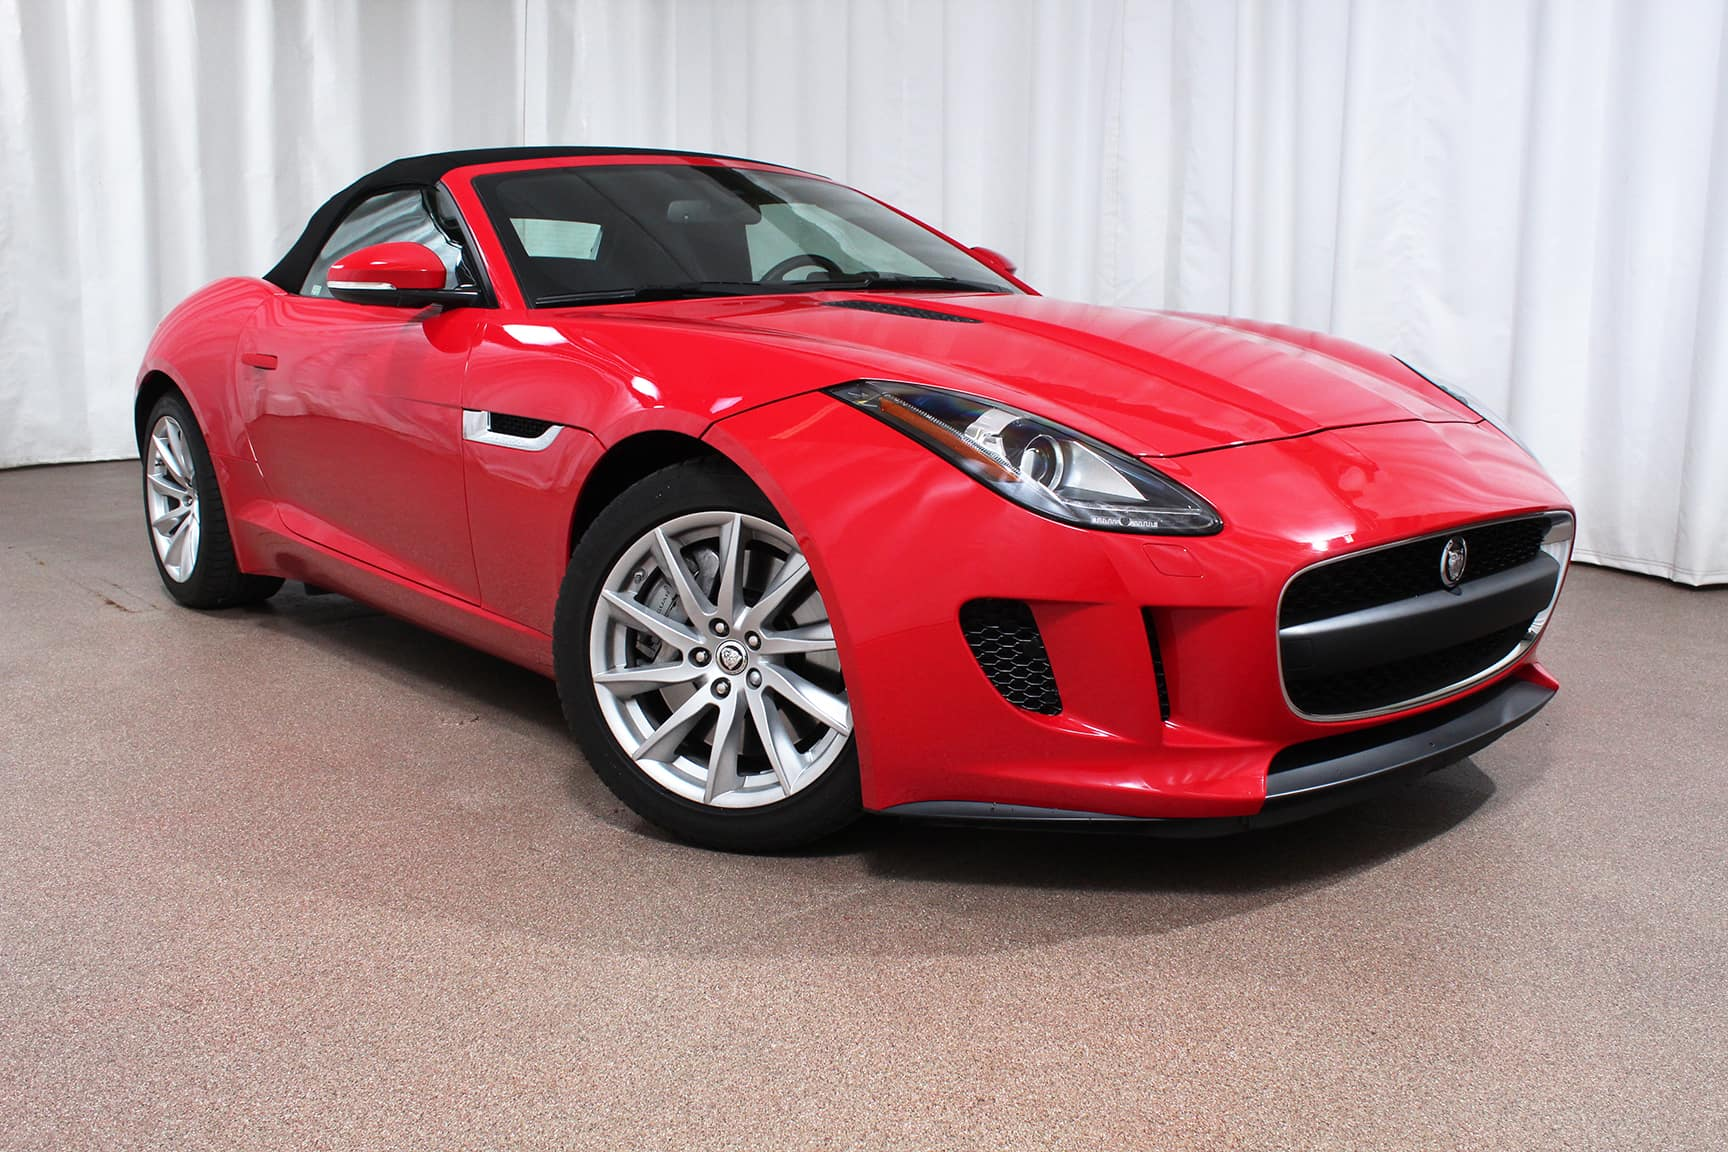 Certified Pre Owned 2014 Jaguar F Type Convertible For Sale In Colorado Springs Red Noland Auto Group